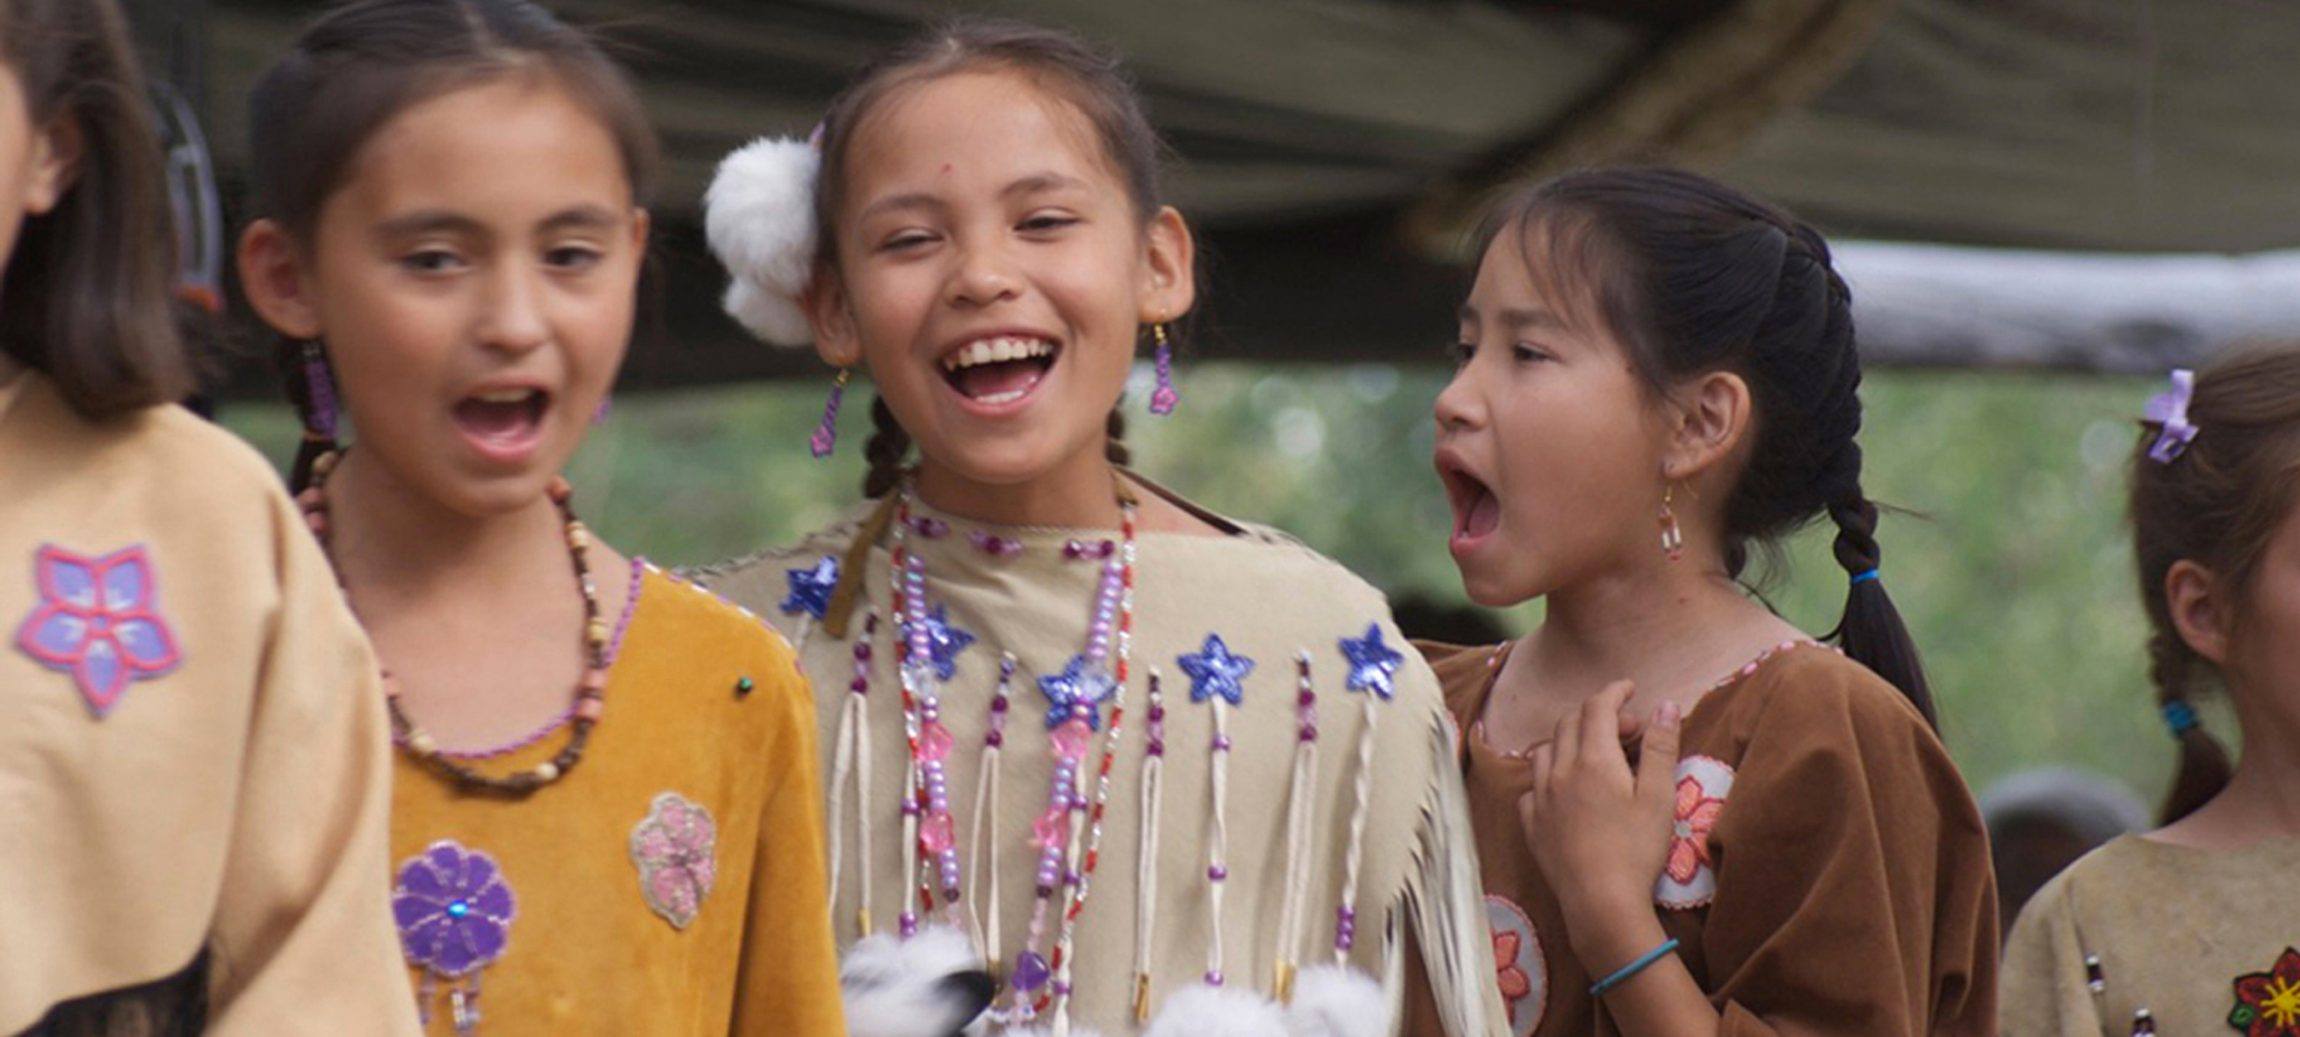 """""""The Sacred Place Where Life Begins"""" tells the story of the women of the Gwich'in Alaska Native peoples and their efforts to speak out for their sacred land in the Arctic National Wildlife Refuge."""